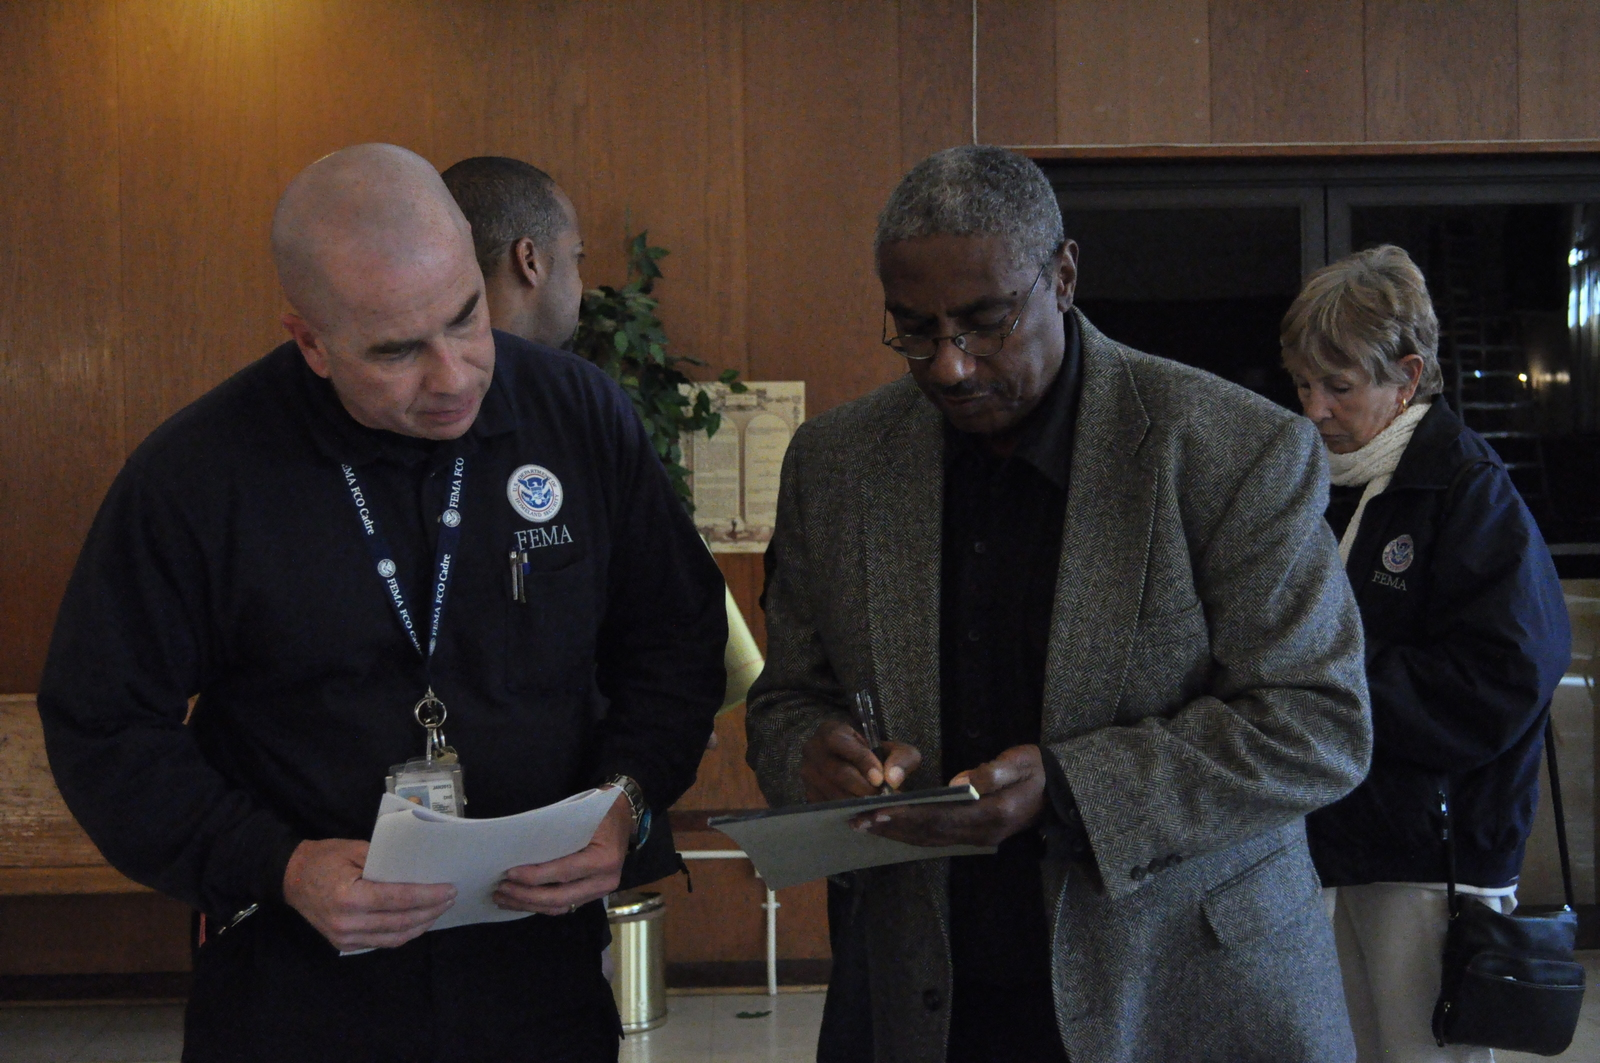 Newark, N.J., Nov. 5, 2012 -- Federal Coordinating Officer, Joe Girot, exchanges information with Pastor Norman Miles of Trinity Temple in preparation for a meeting with local area pastors. The meeting was arranged to discuss the best ways to help members of the community deal with the aftermath of Hurricane Sandy. Photo by Sharon Karr/FEMA